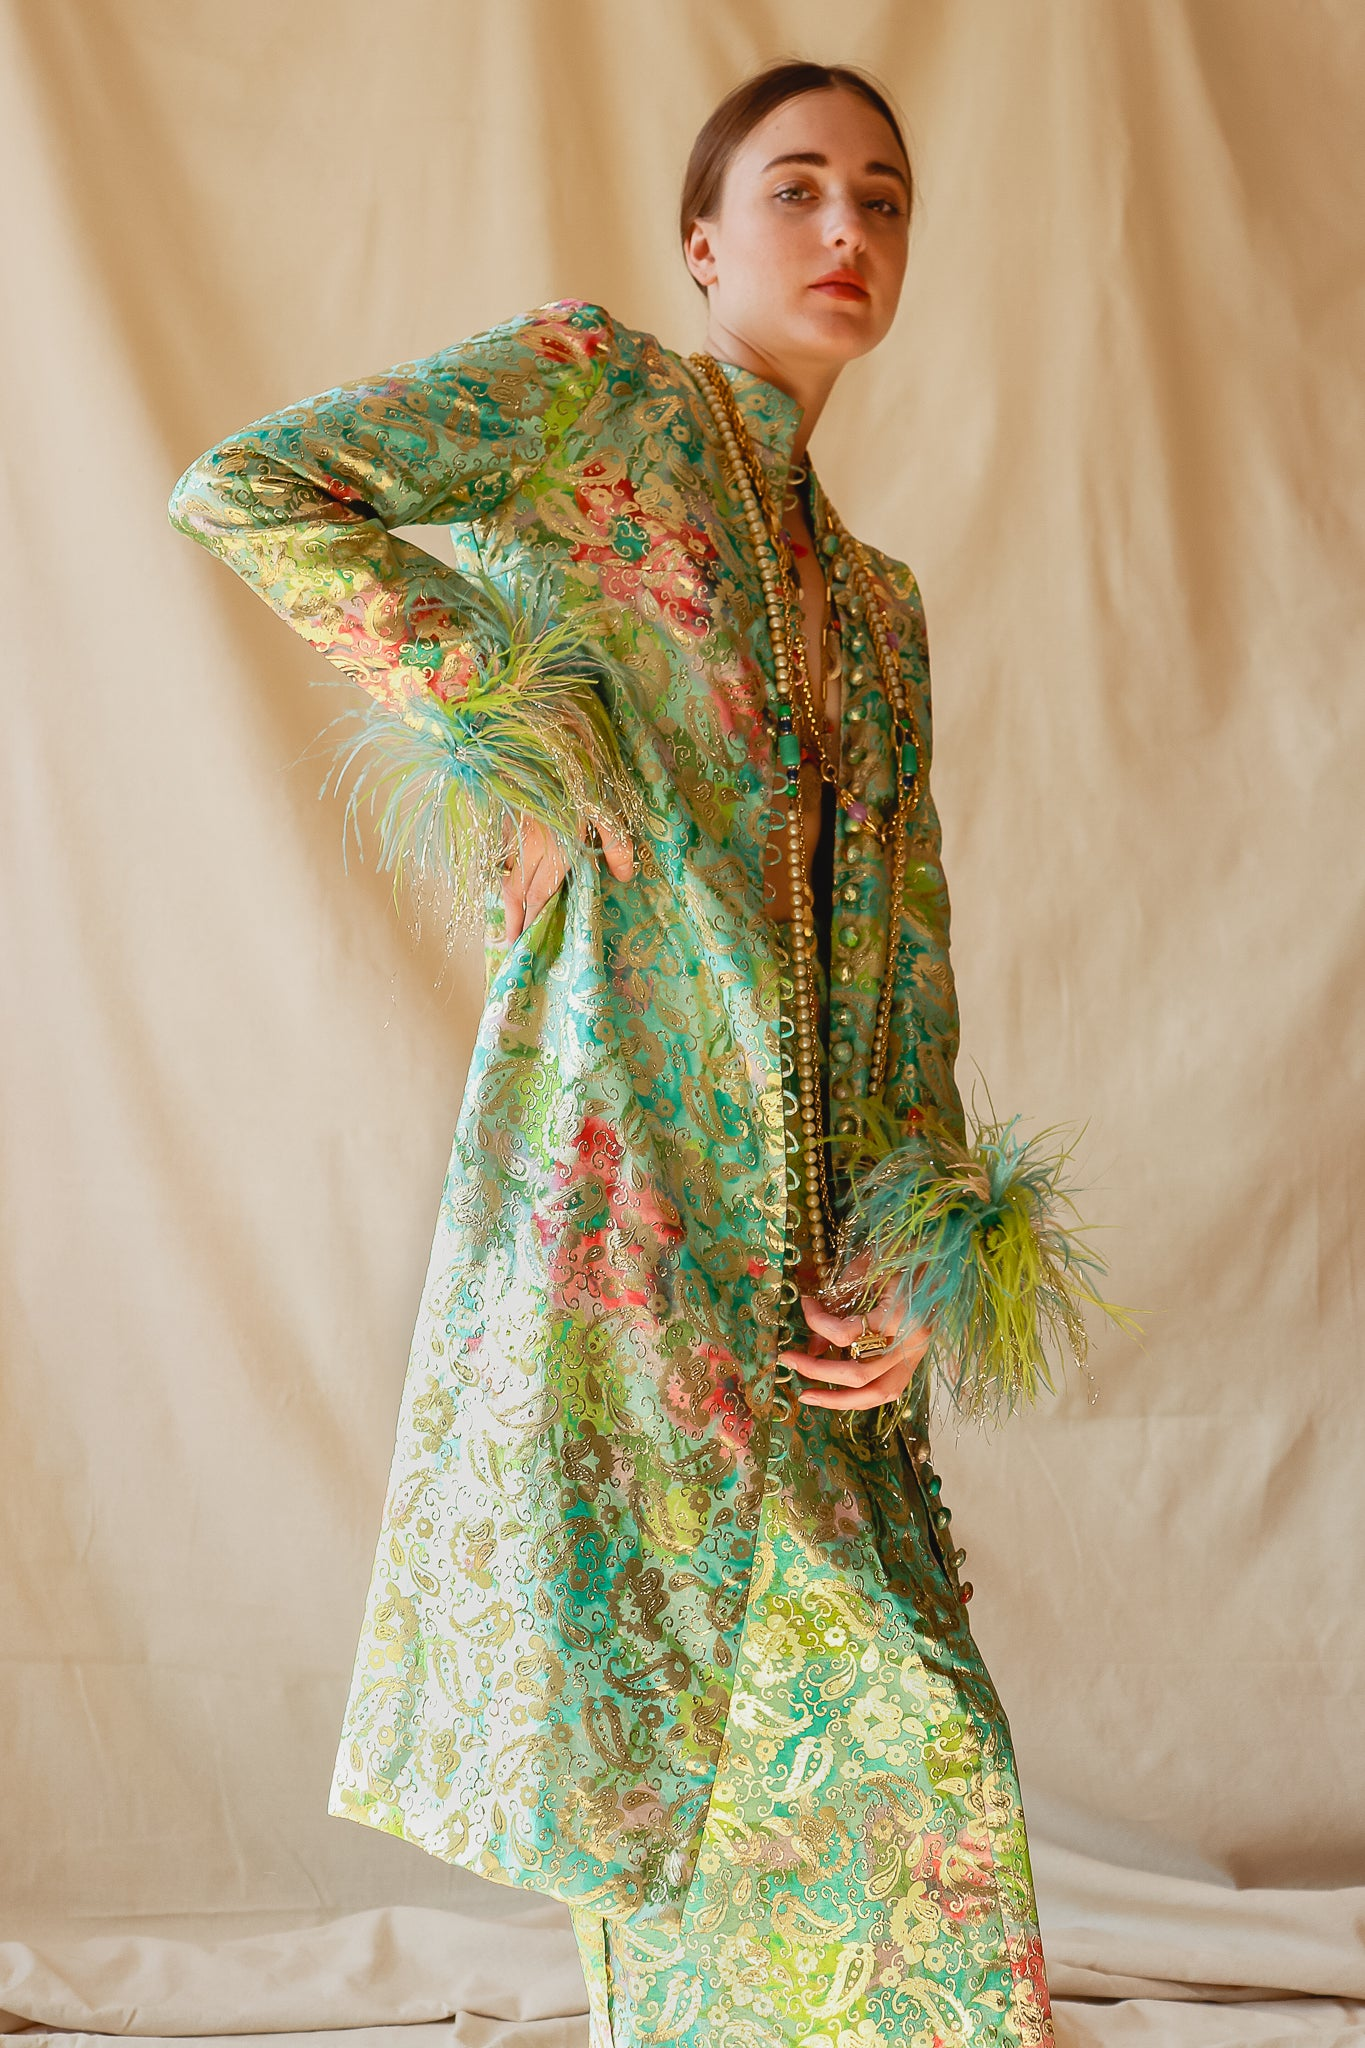 Recess Vintage Consignment Girl in green brocade Victor Costa feather jacket set